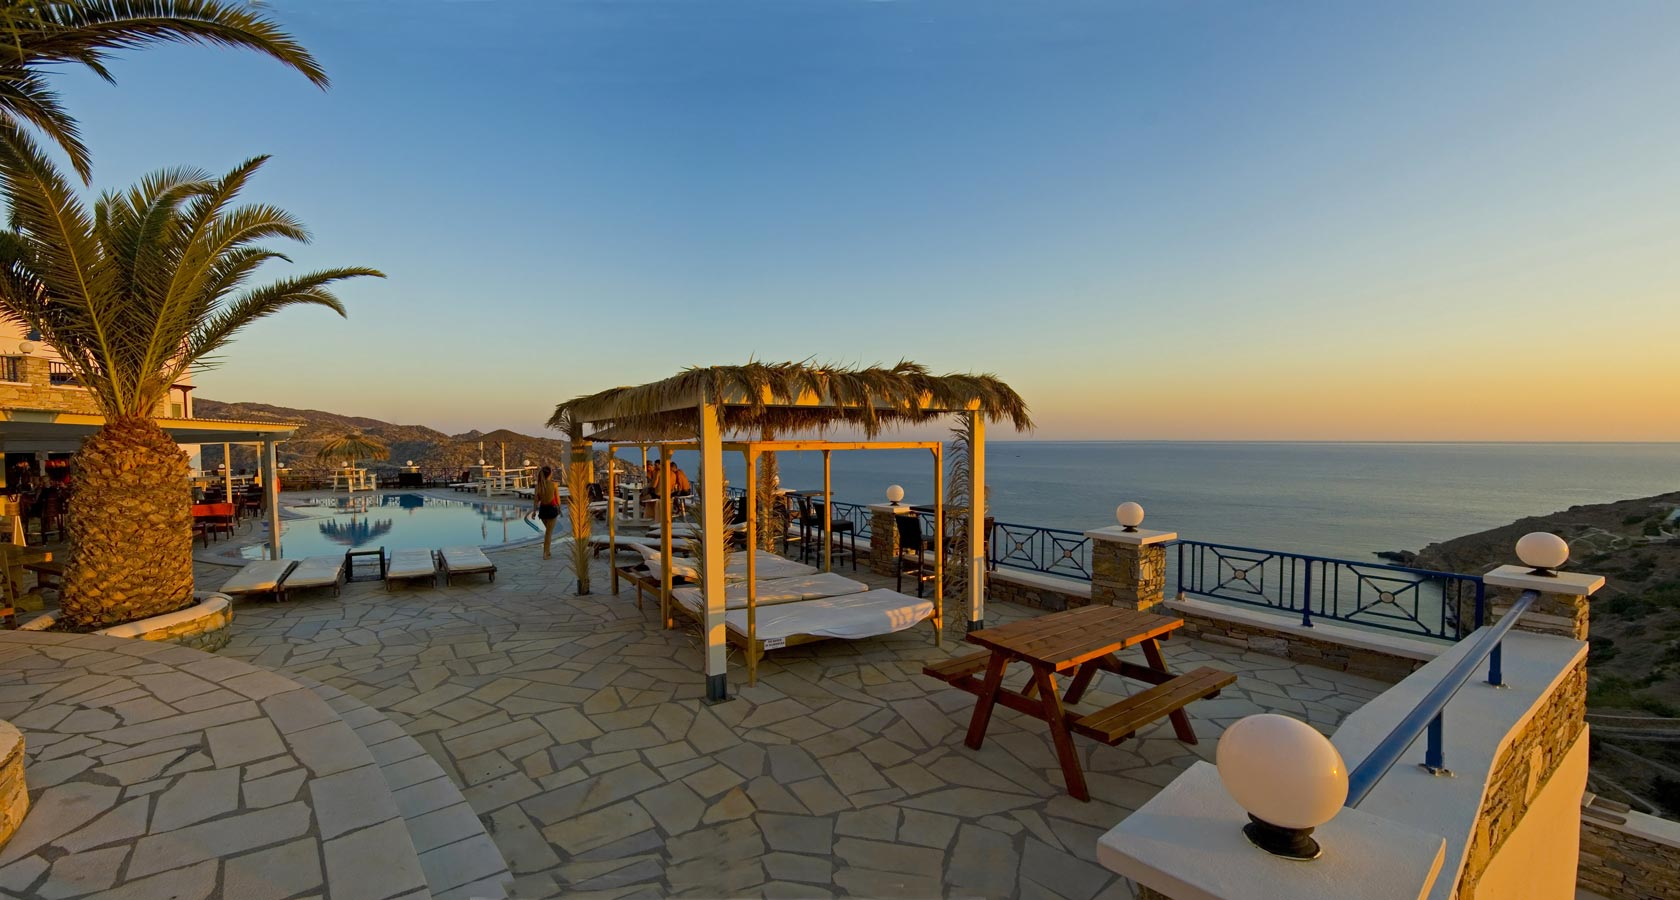 The Sea View of Hermes Hotel in Ios island Greece